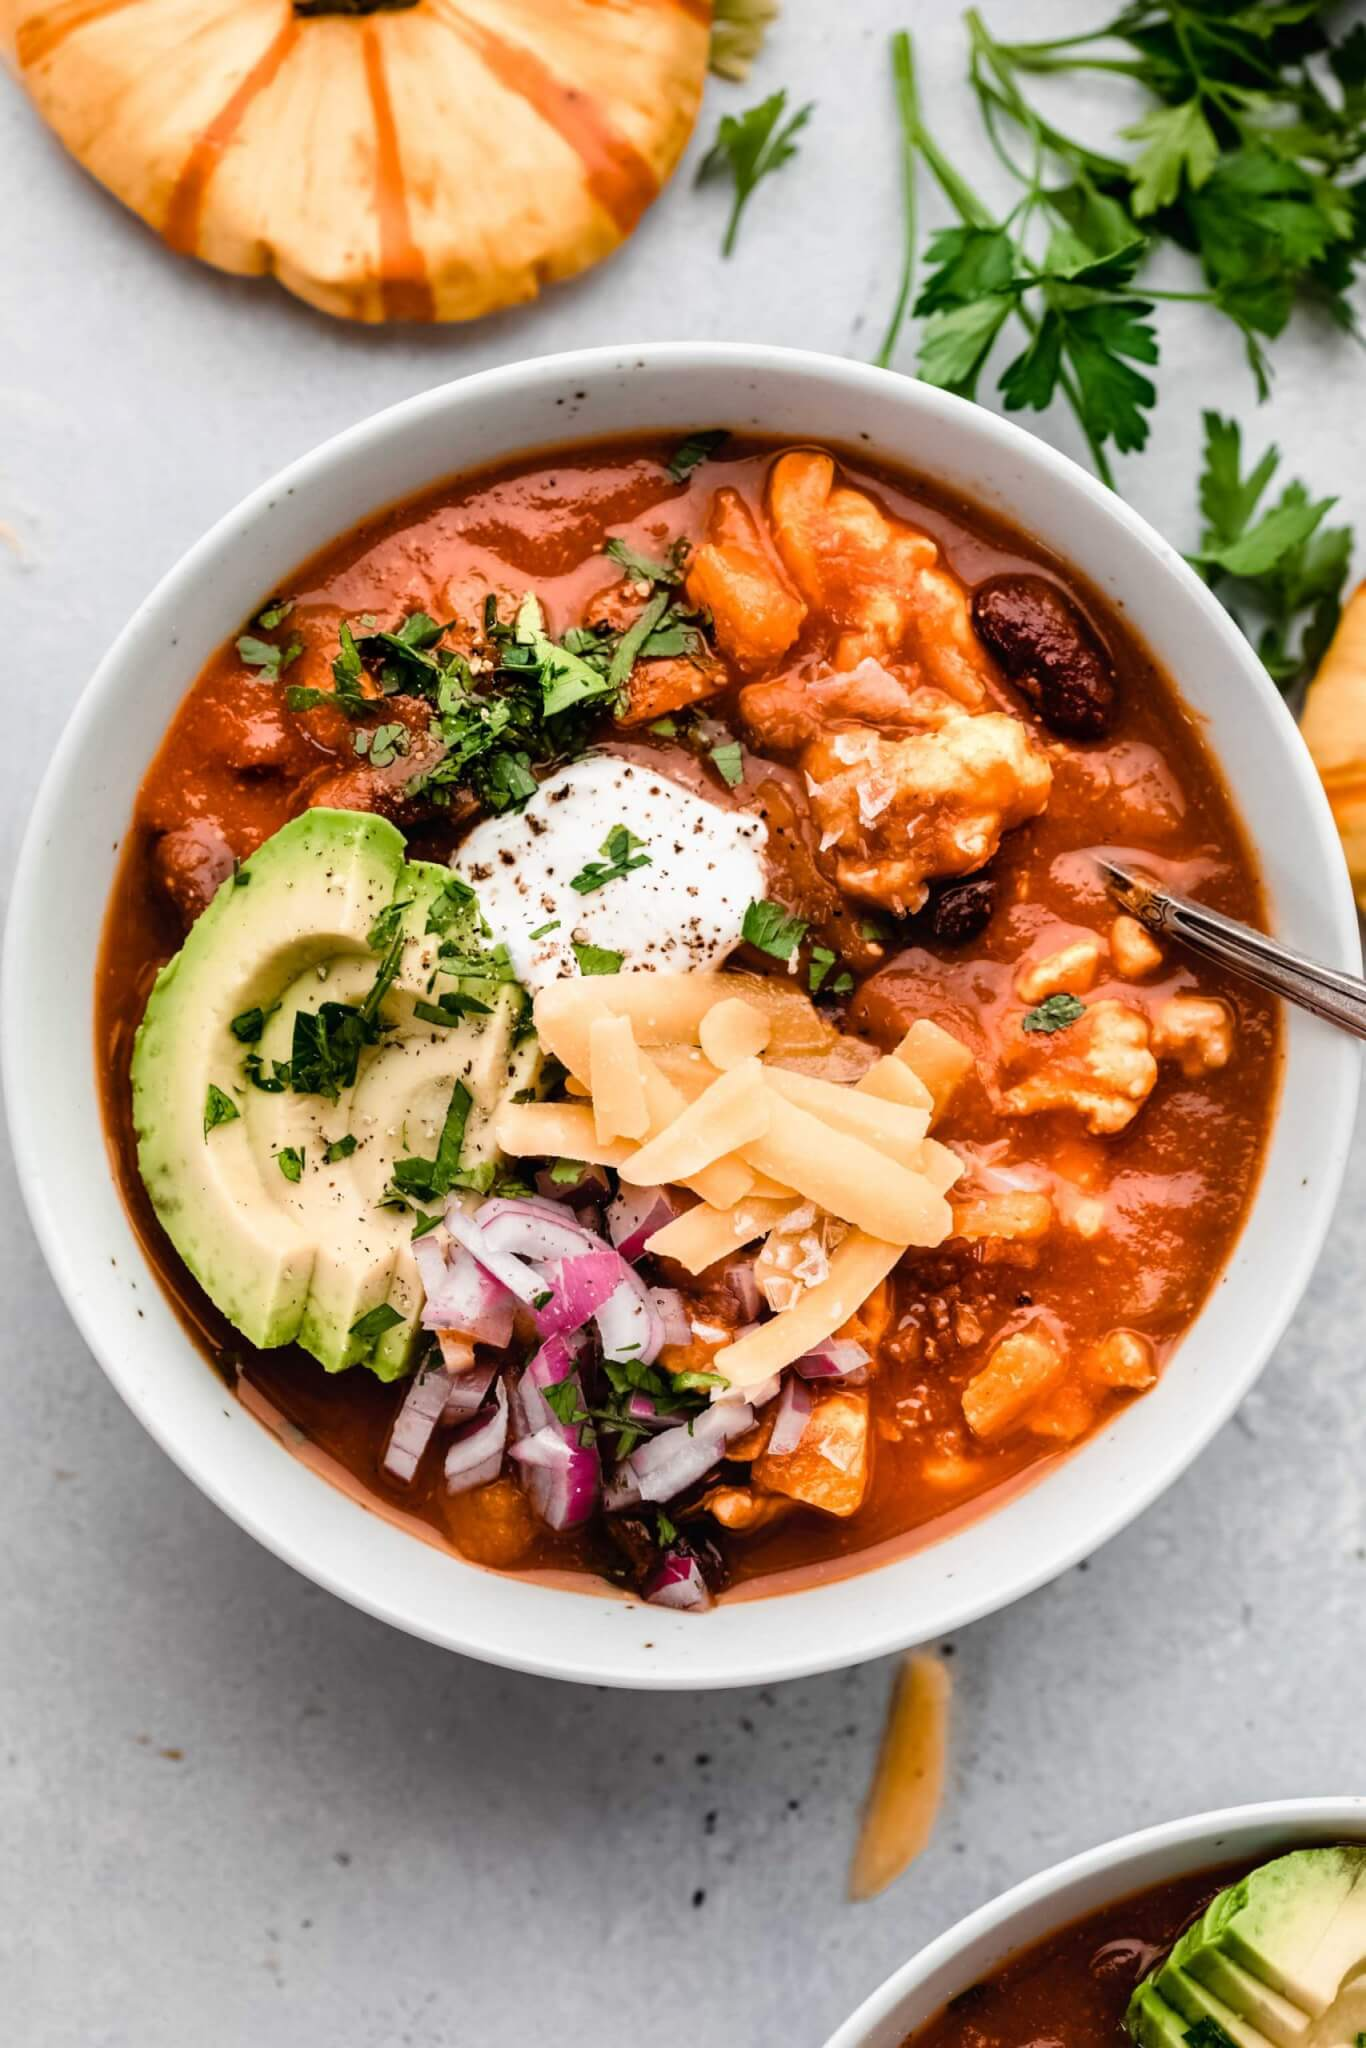 Bowl of pumpkin chili topped with cheese, avocado, sour cream and red onions.